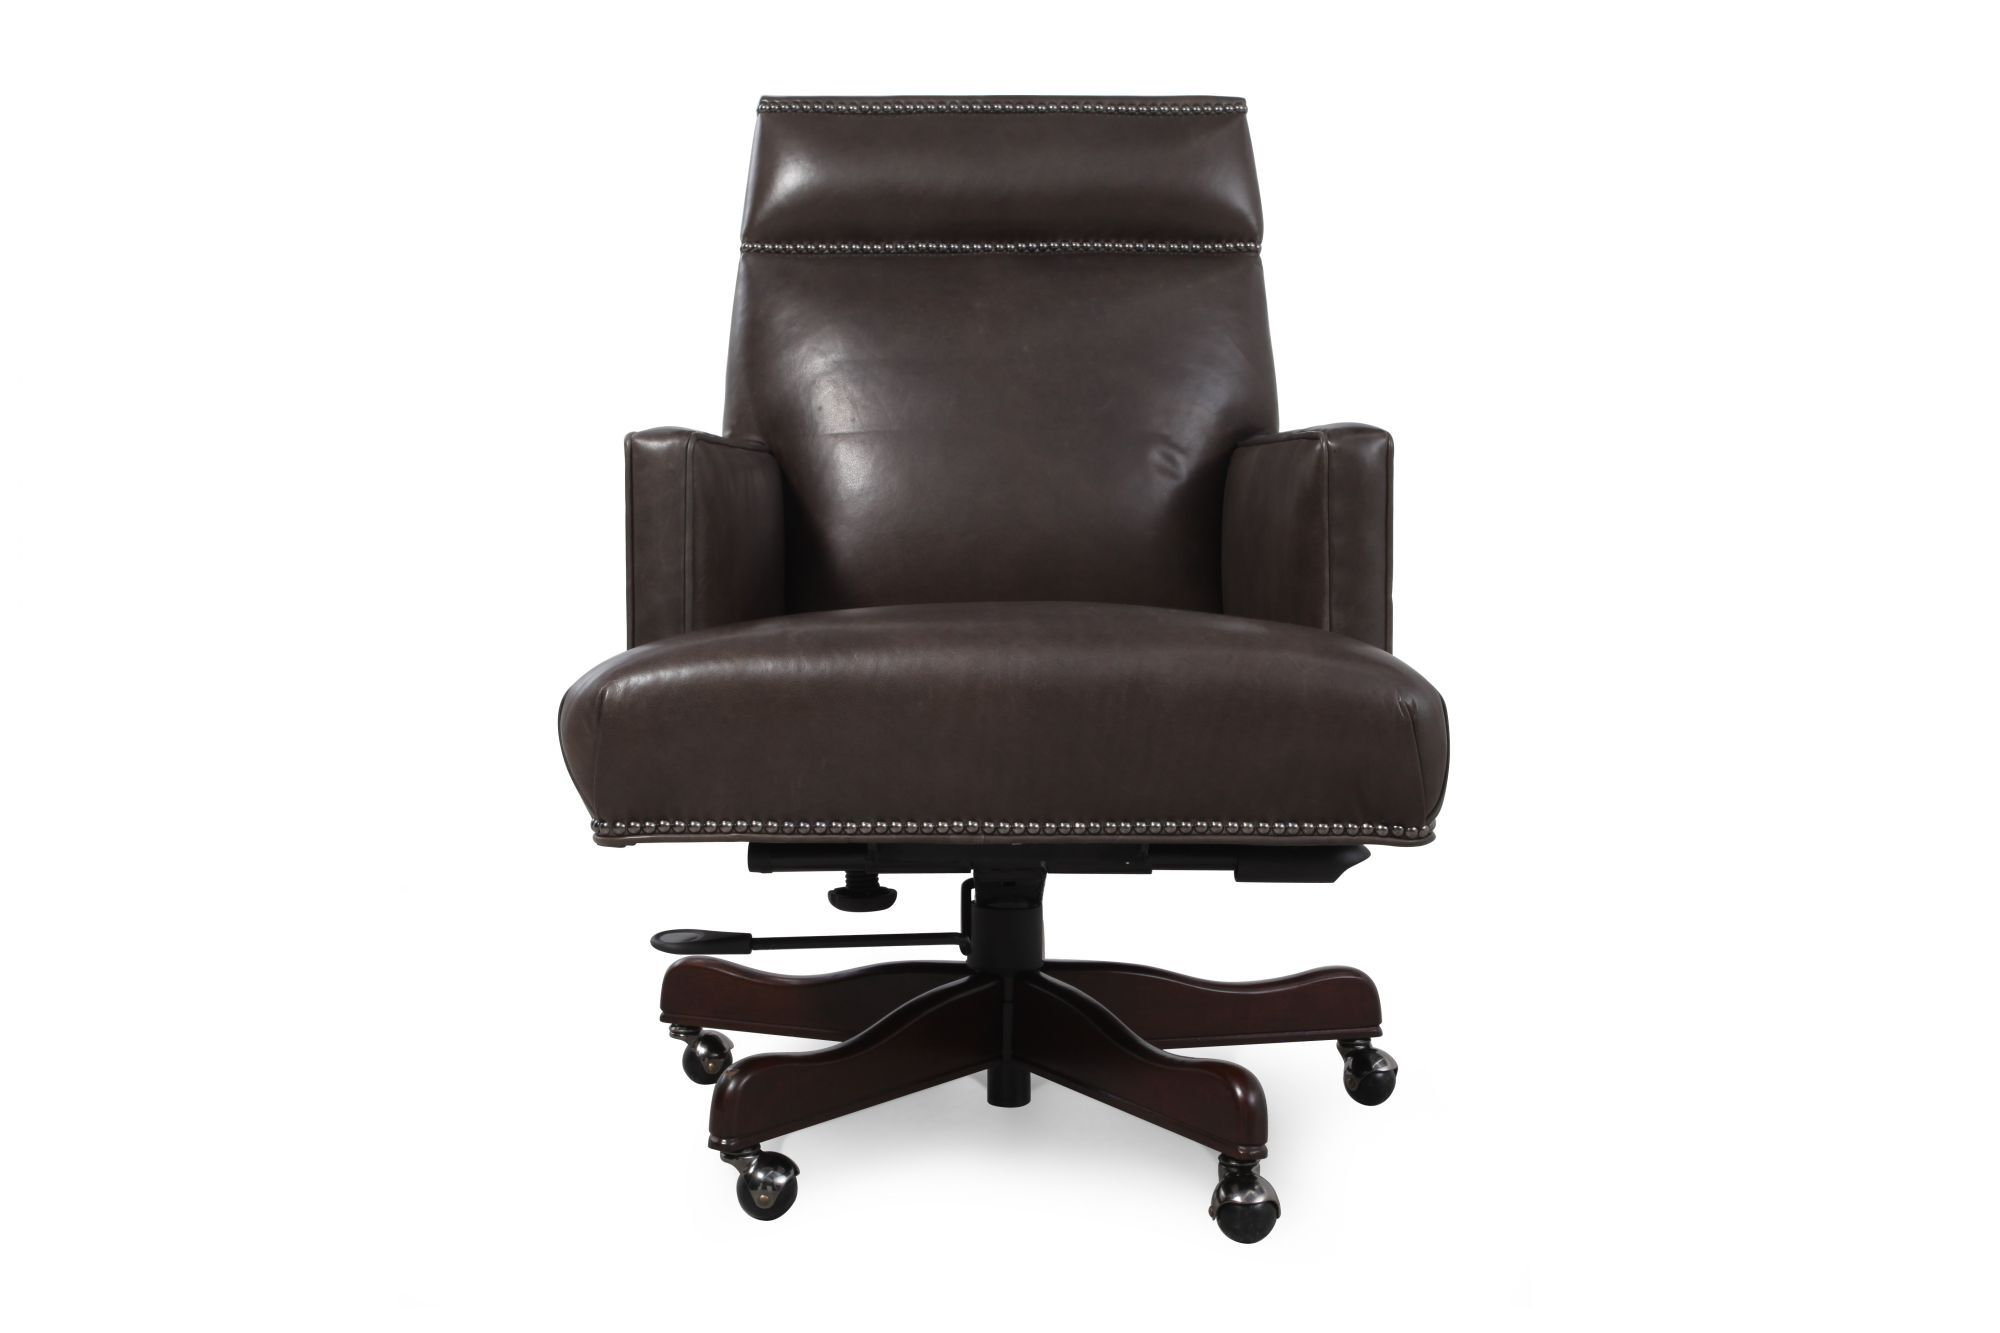 Images Leather Nailhead Accented Executive Desk Chairu0026nbsp;in Charcoal Grey  Leather Nailhead Accented Executive Desk Chairu0026nbsp;in Charcoal Grey